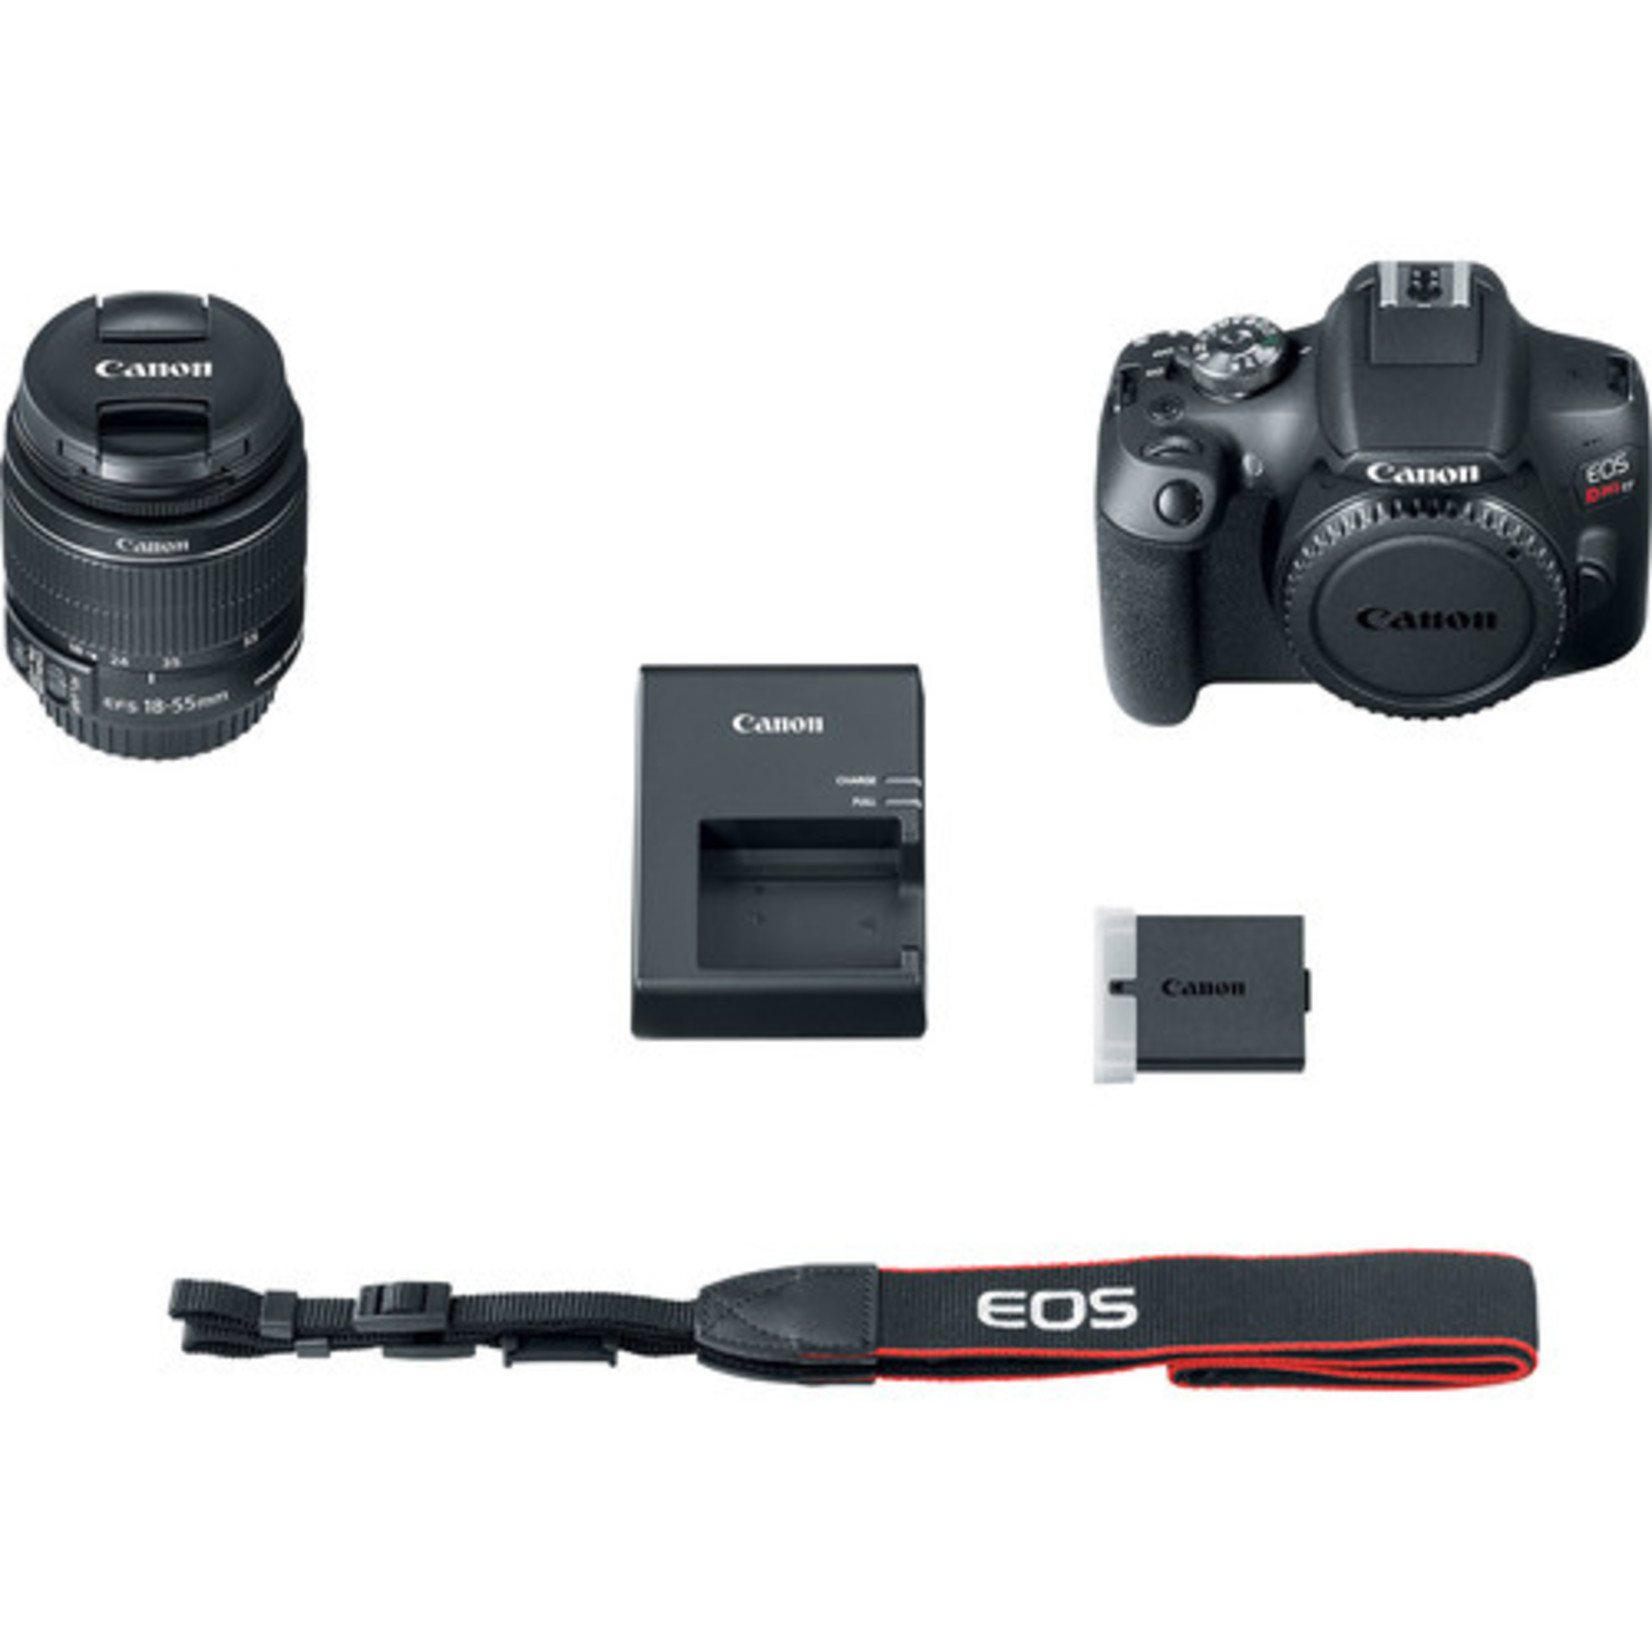 Canon Canon EOS Rebel T7 DSLR Camera with 18-55mm Lens